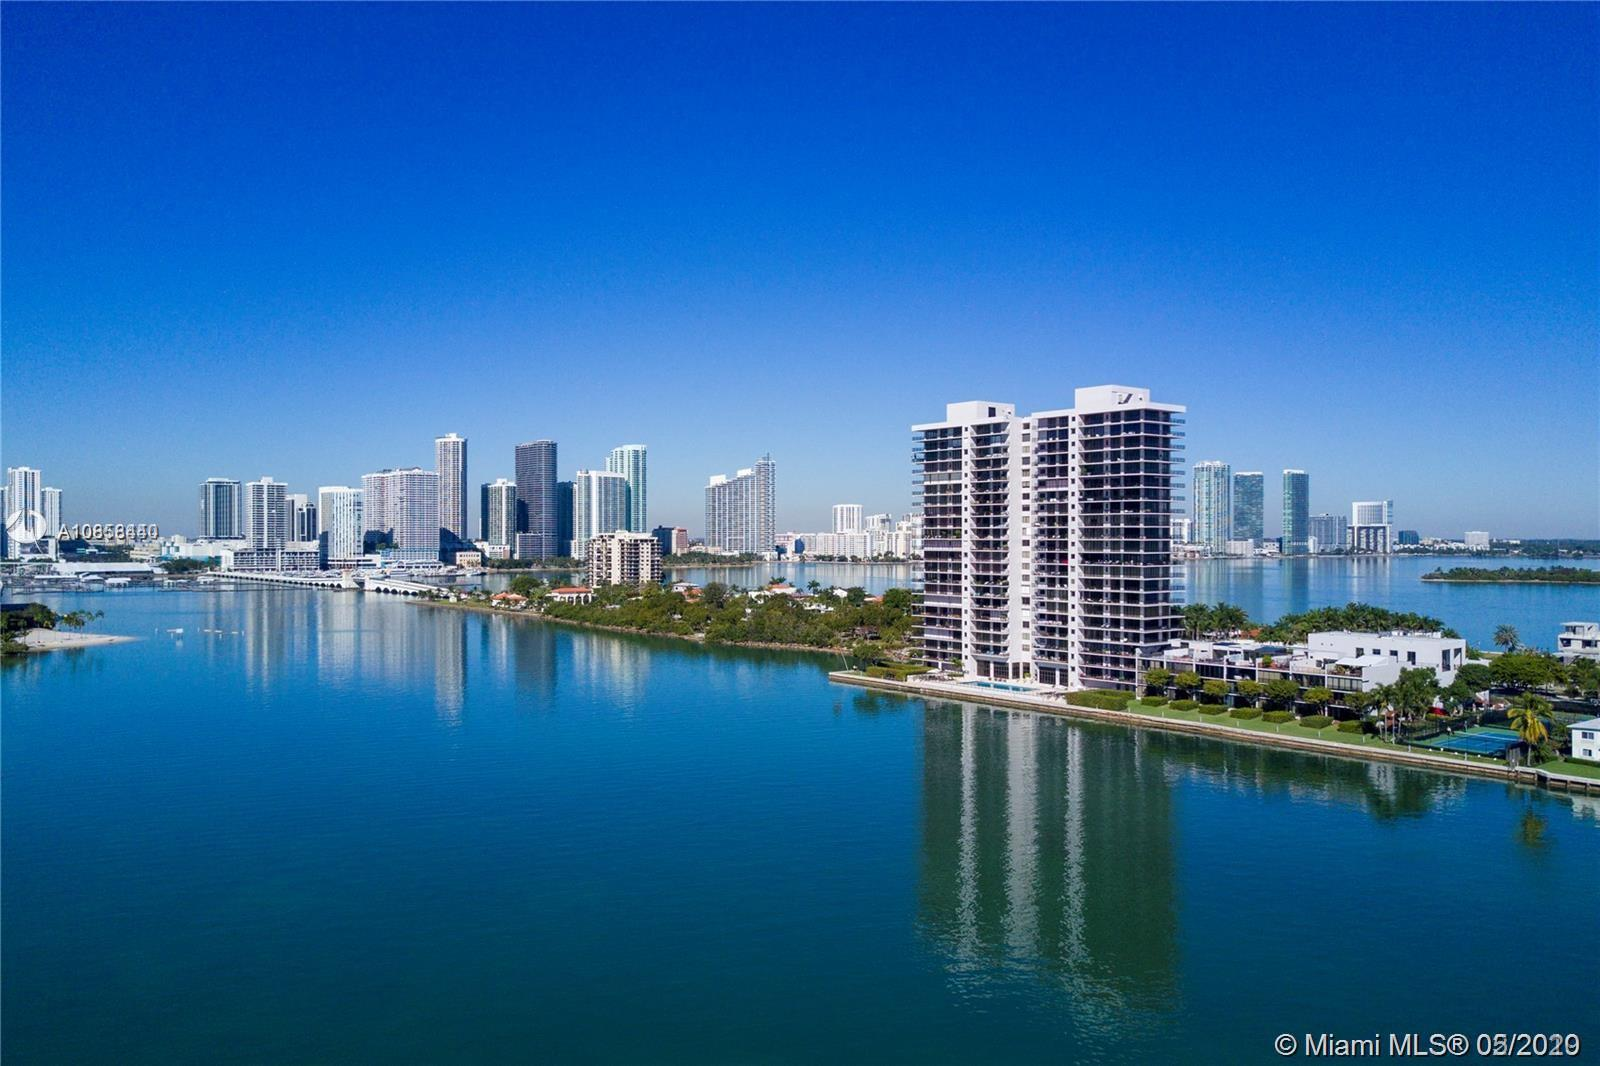 JEWEL IN THE SKY.   This condo has the best exposure views of all Miami beach.  Huge wrap around corner unit views of sunrise and sunset,   Direct downtown views overlooking skyline.  1830 interior sq footage, Over 10 foot ceilings.  Wood floors throughout unit.  A must see ,  Ready for investor to make there dream condo ,  Only unit for sale on this line.